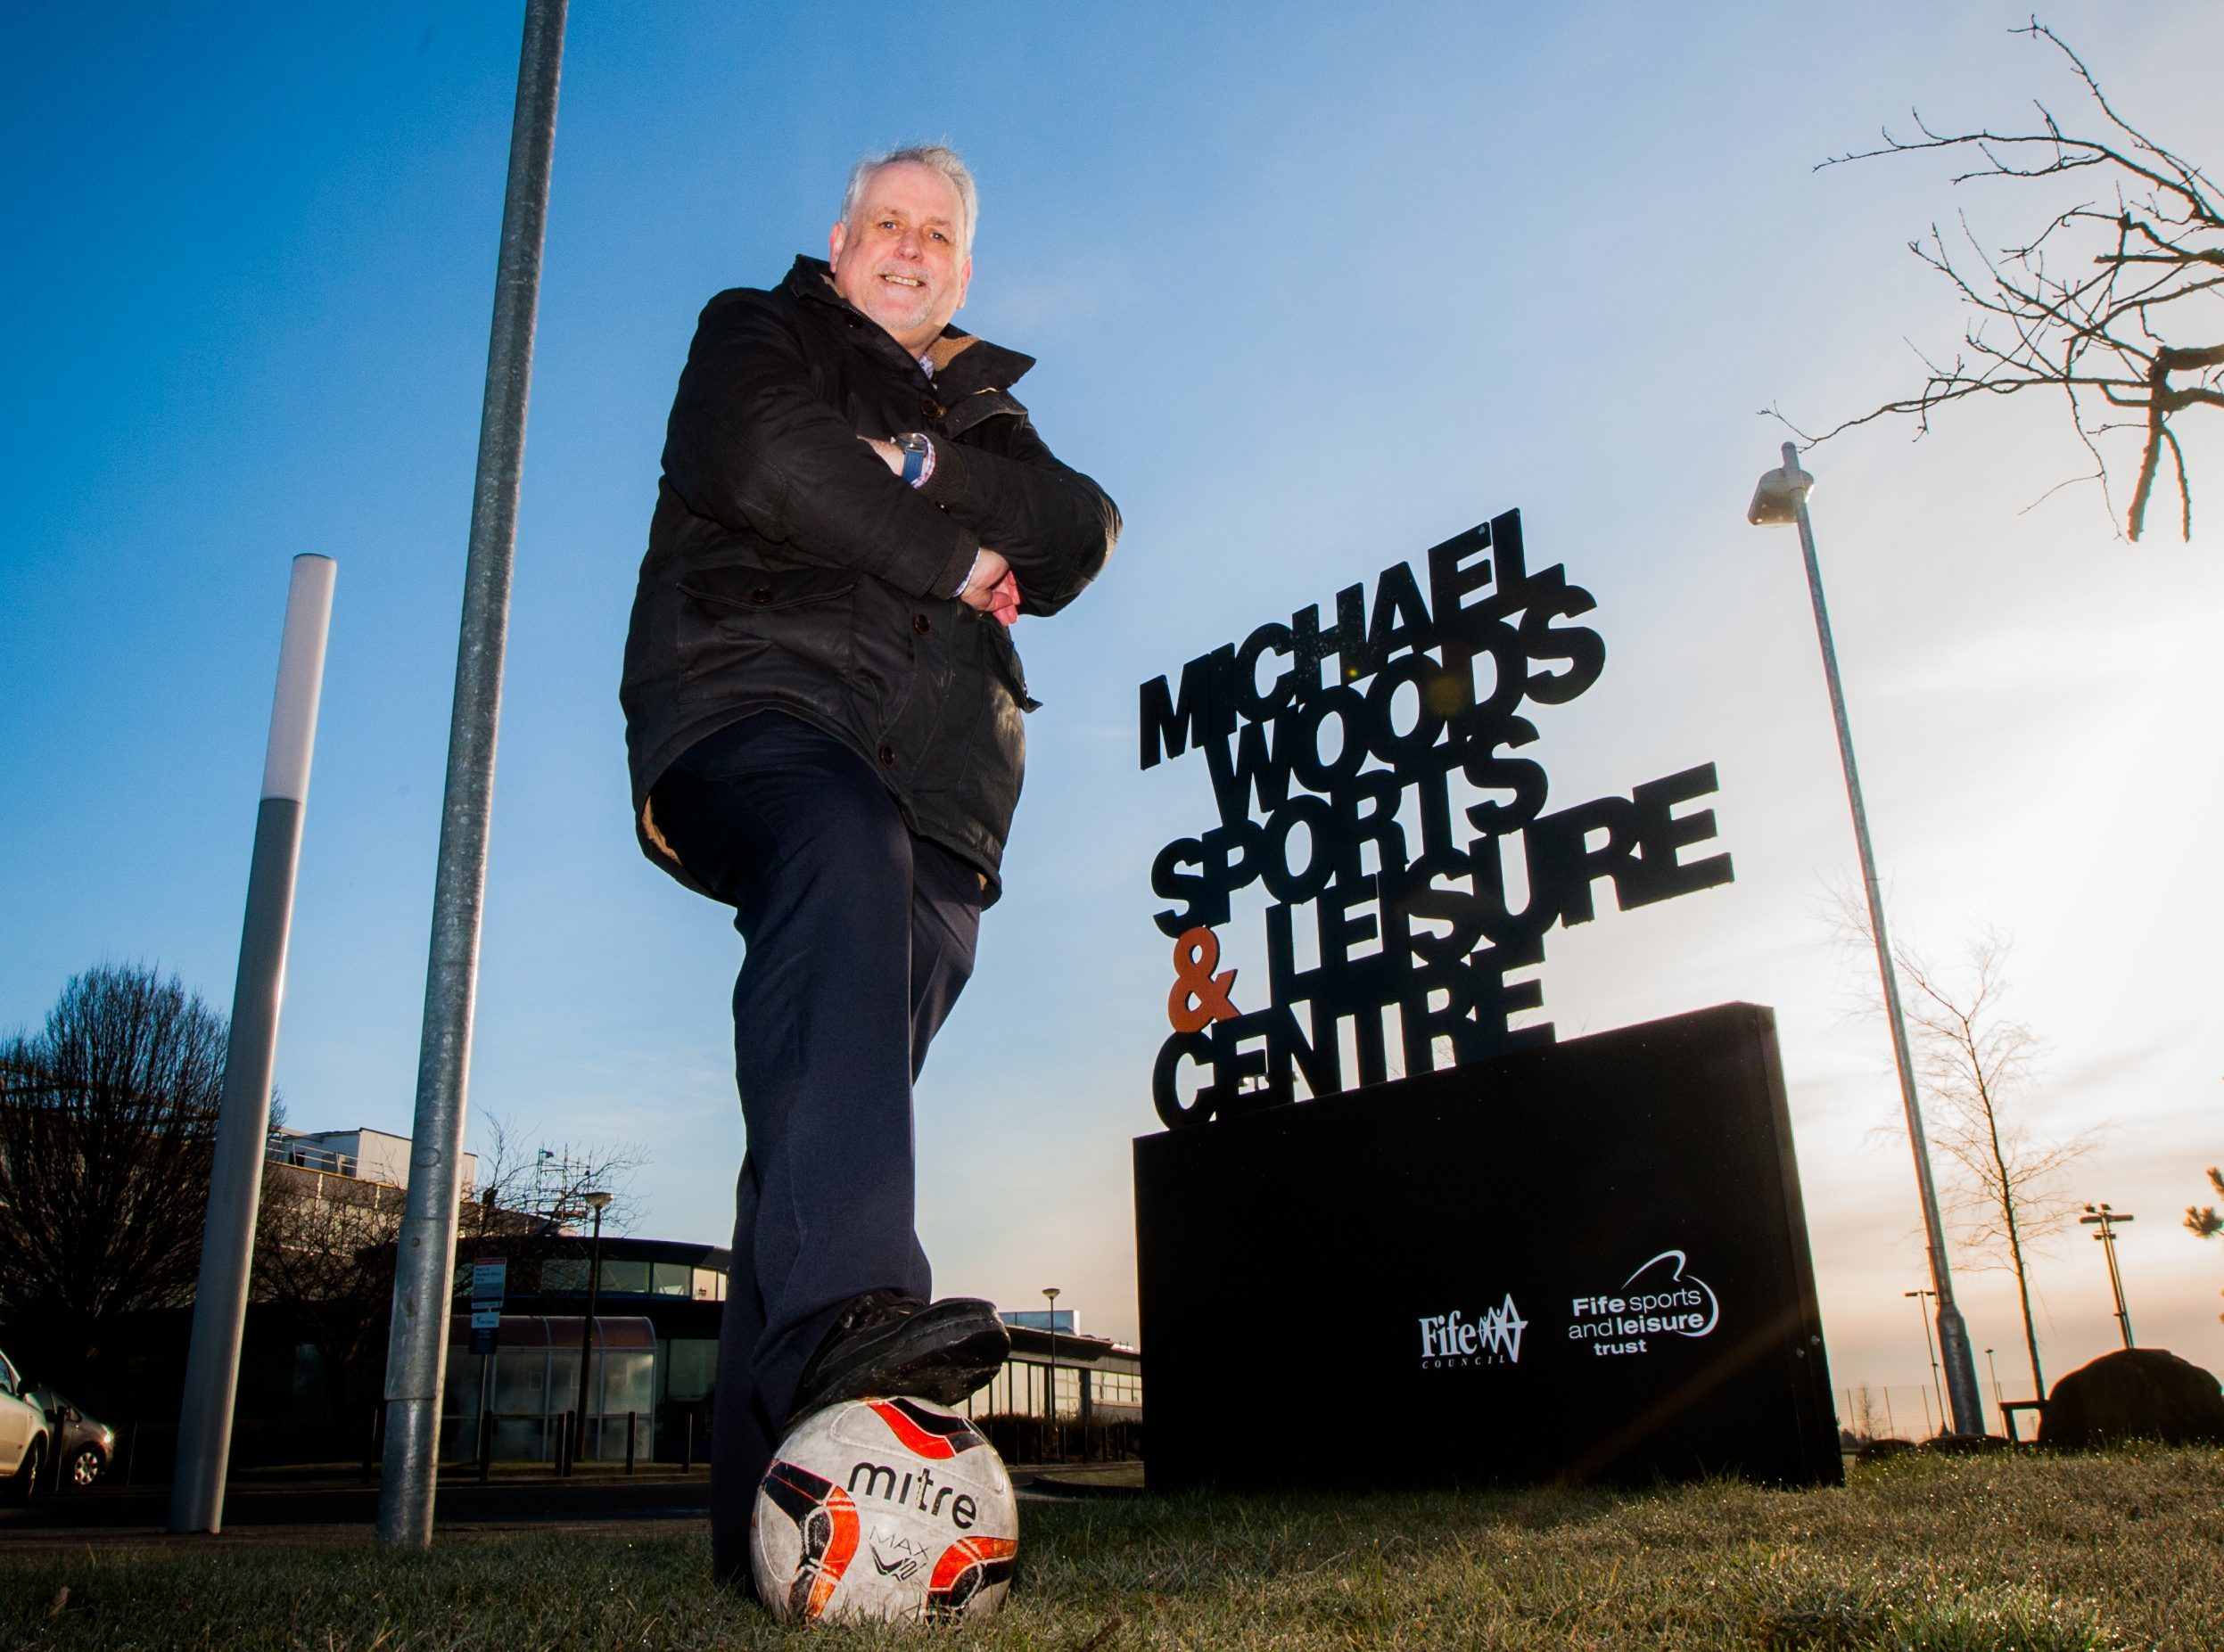 Councillor Bill Brown visits site near the development of new indoor football academy.